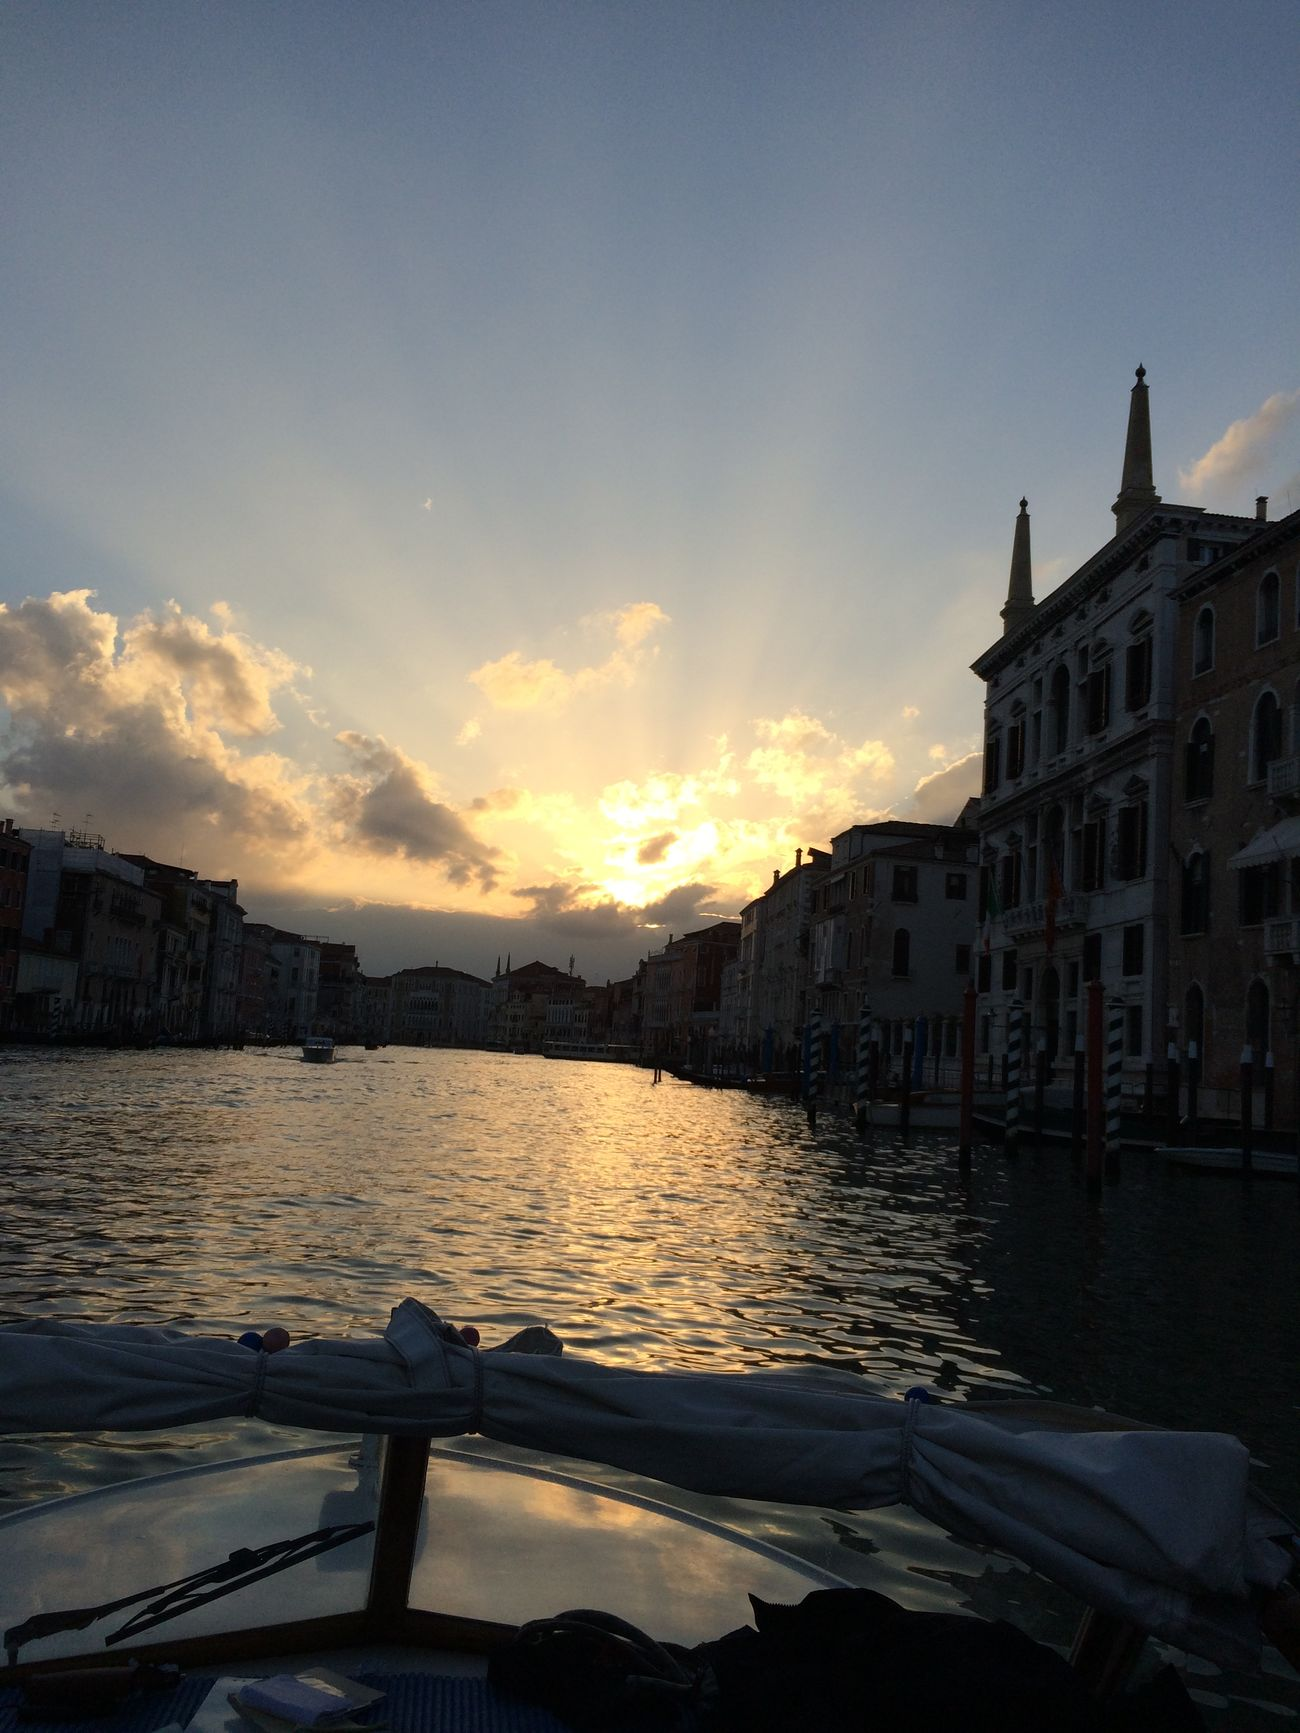 Original Photography Iphone5s Photography SightseeingVenice Taking Photos Iphoneacademy Landscape_photography